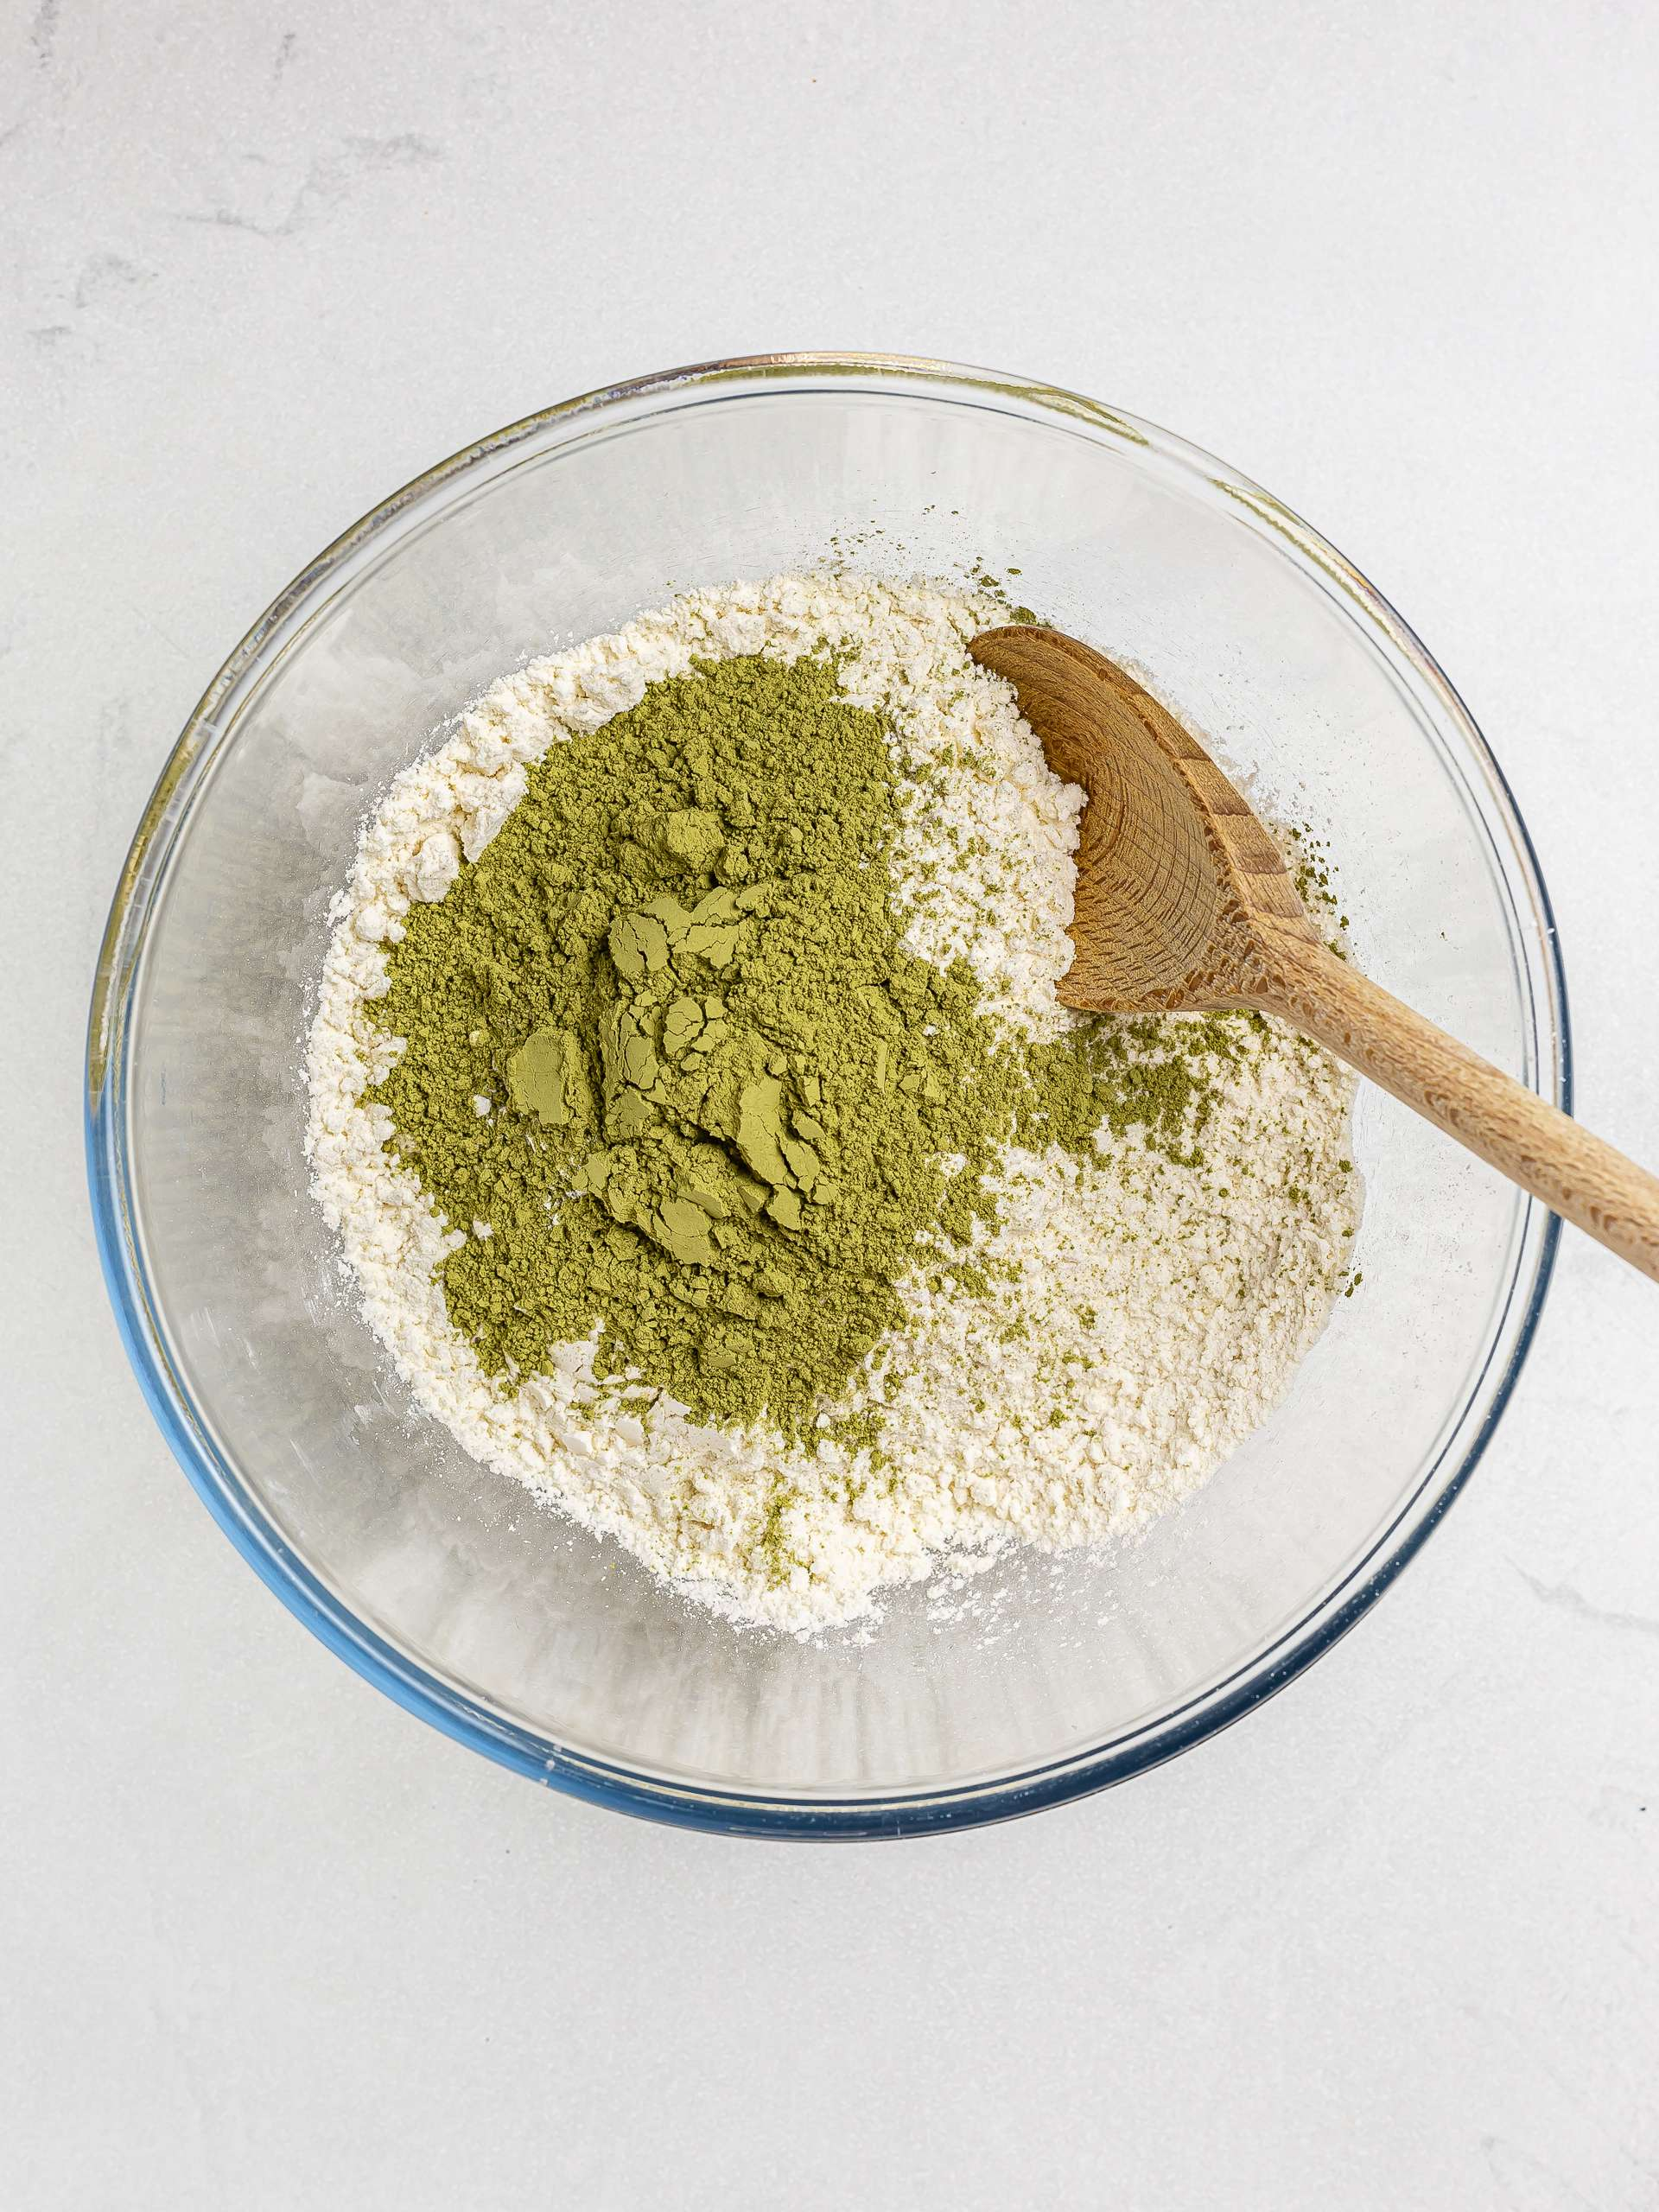 gluten-free flour with matcha powder in a bowl